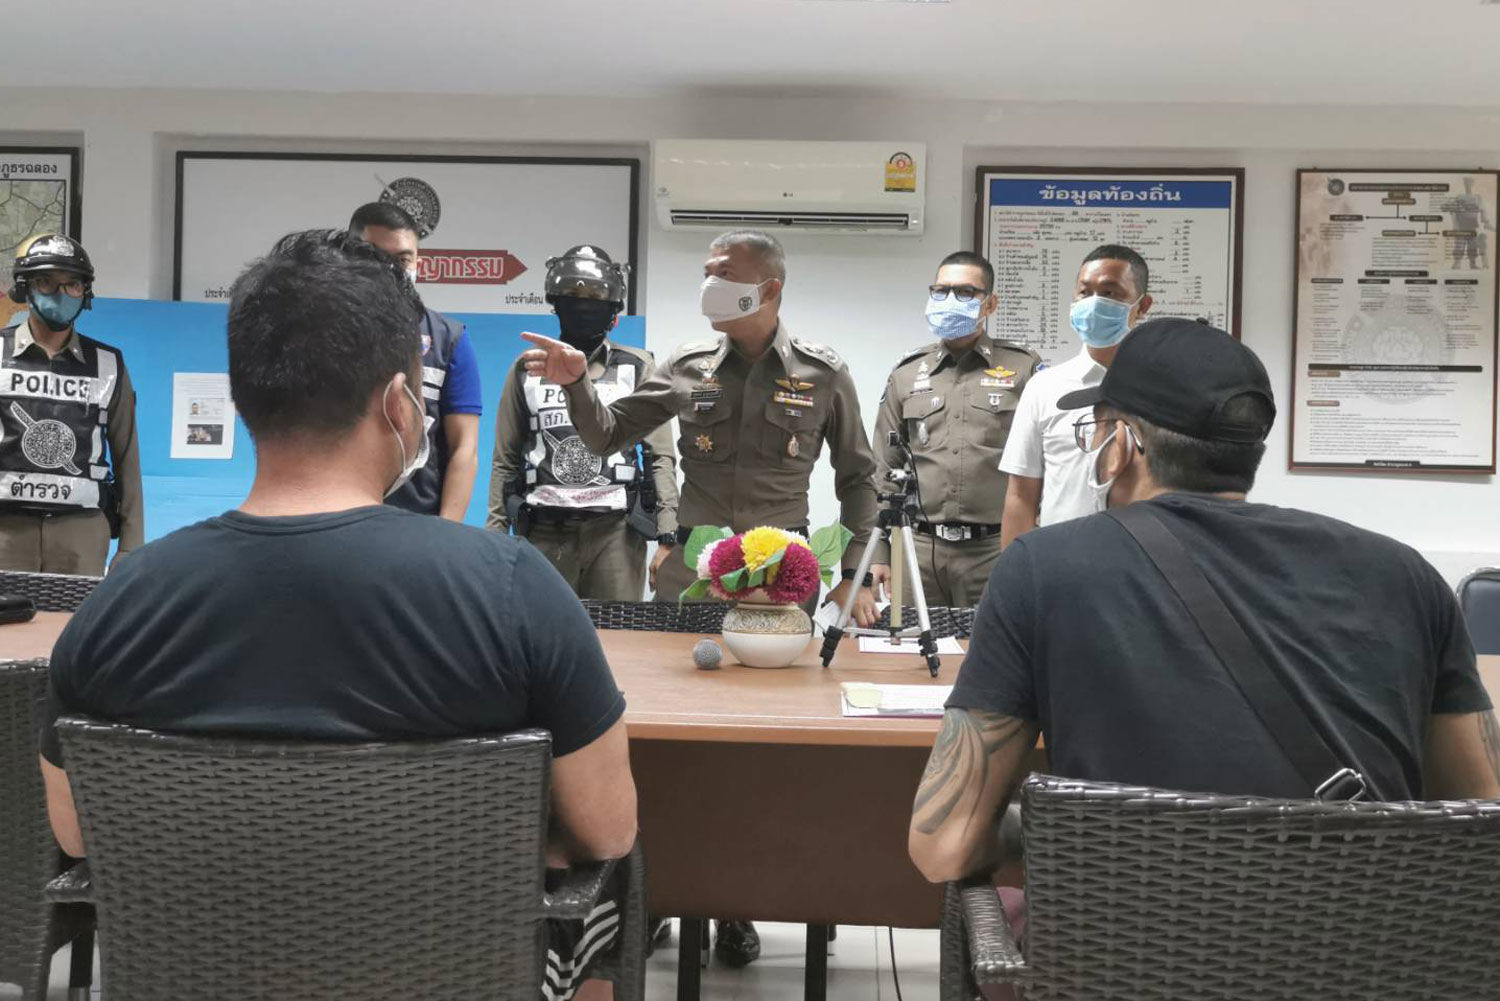 Four arrested for shooting videos at Phuket Zoo and soliciting donations | News by Thaiger